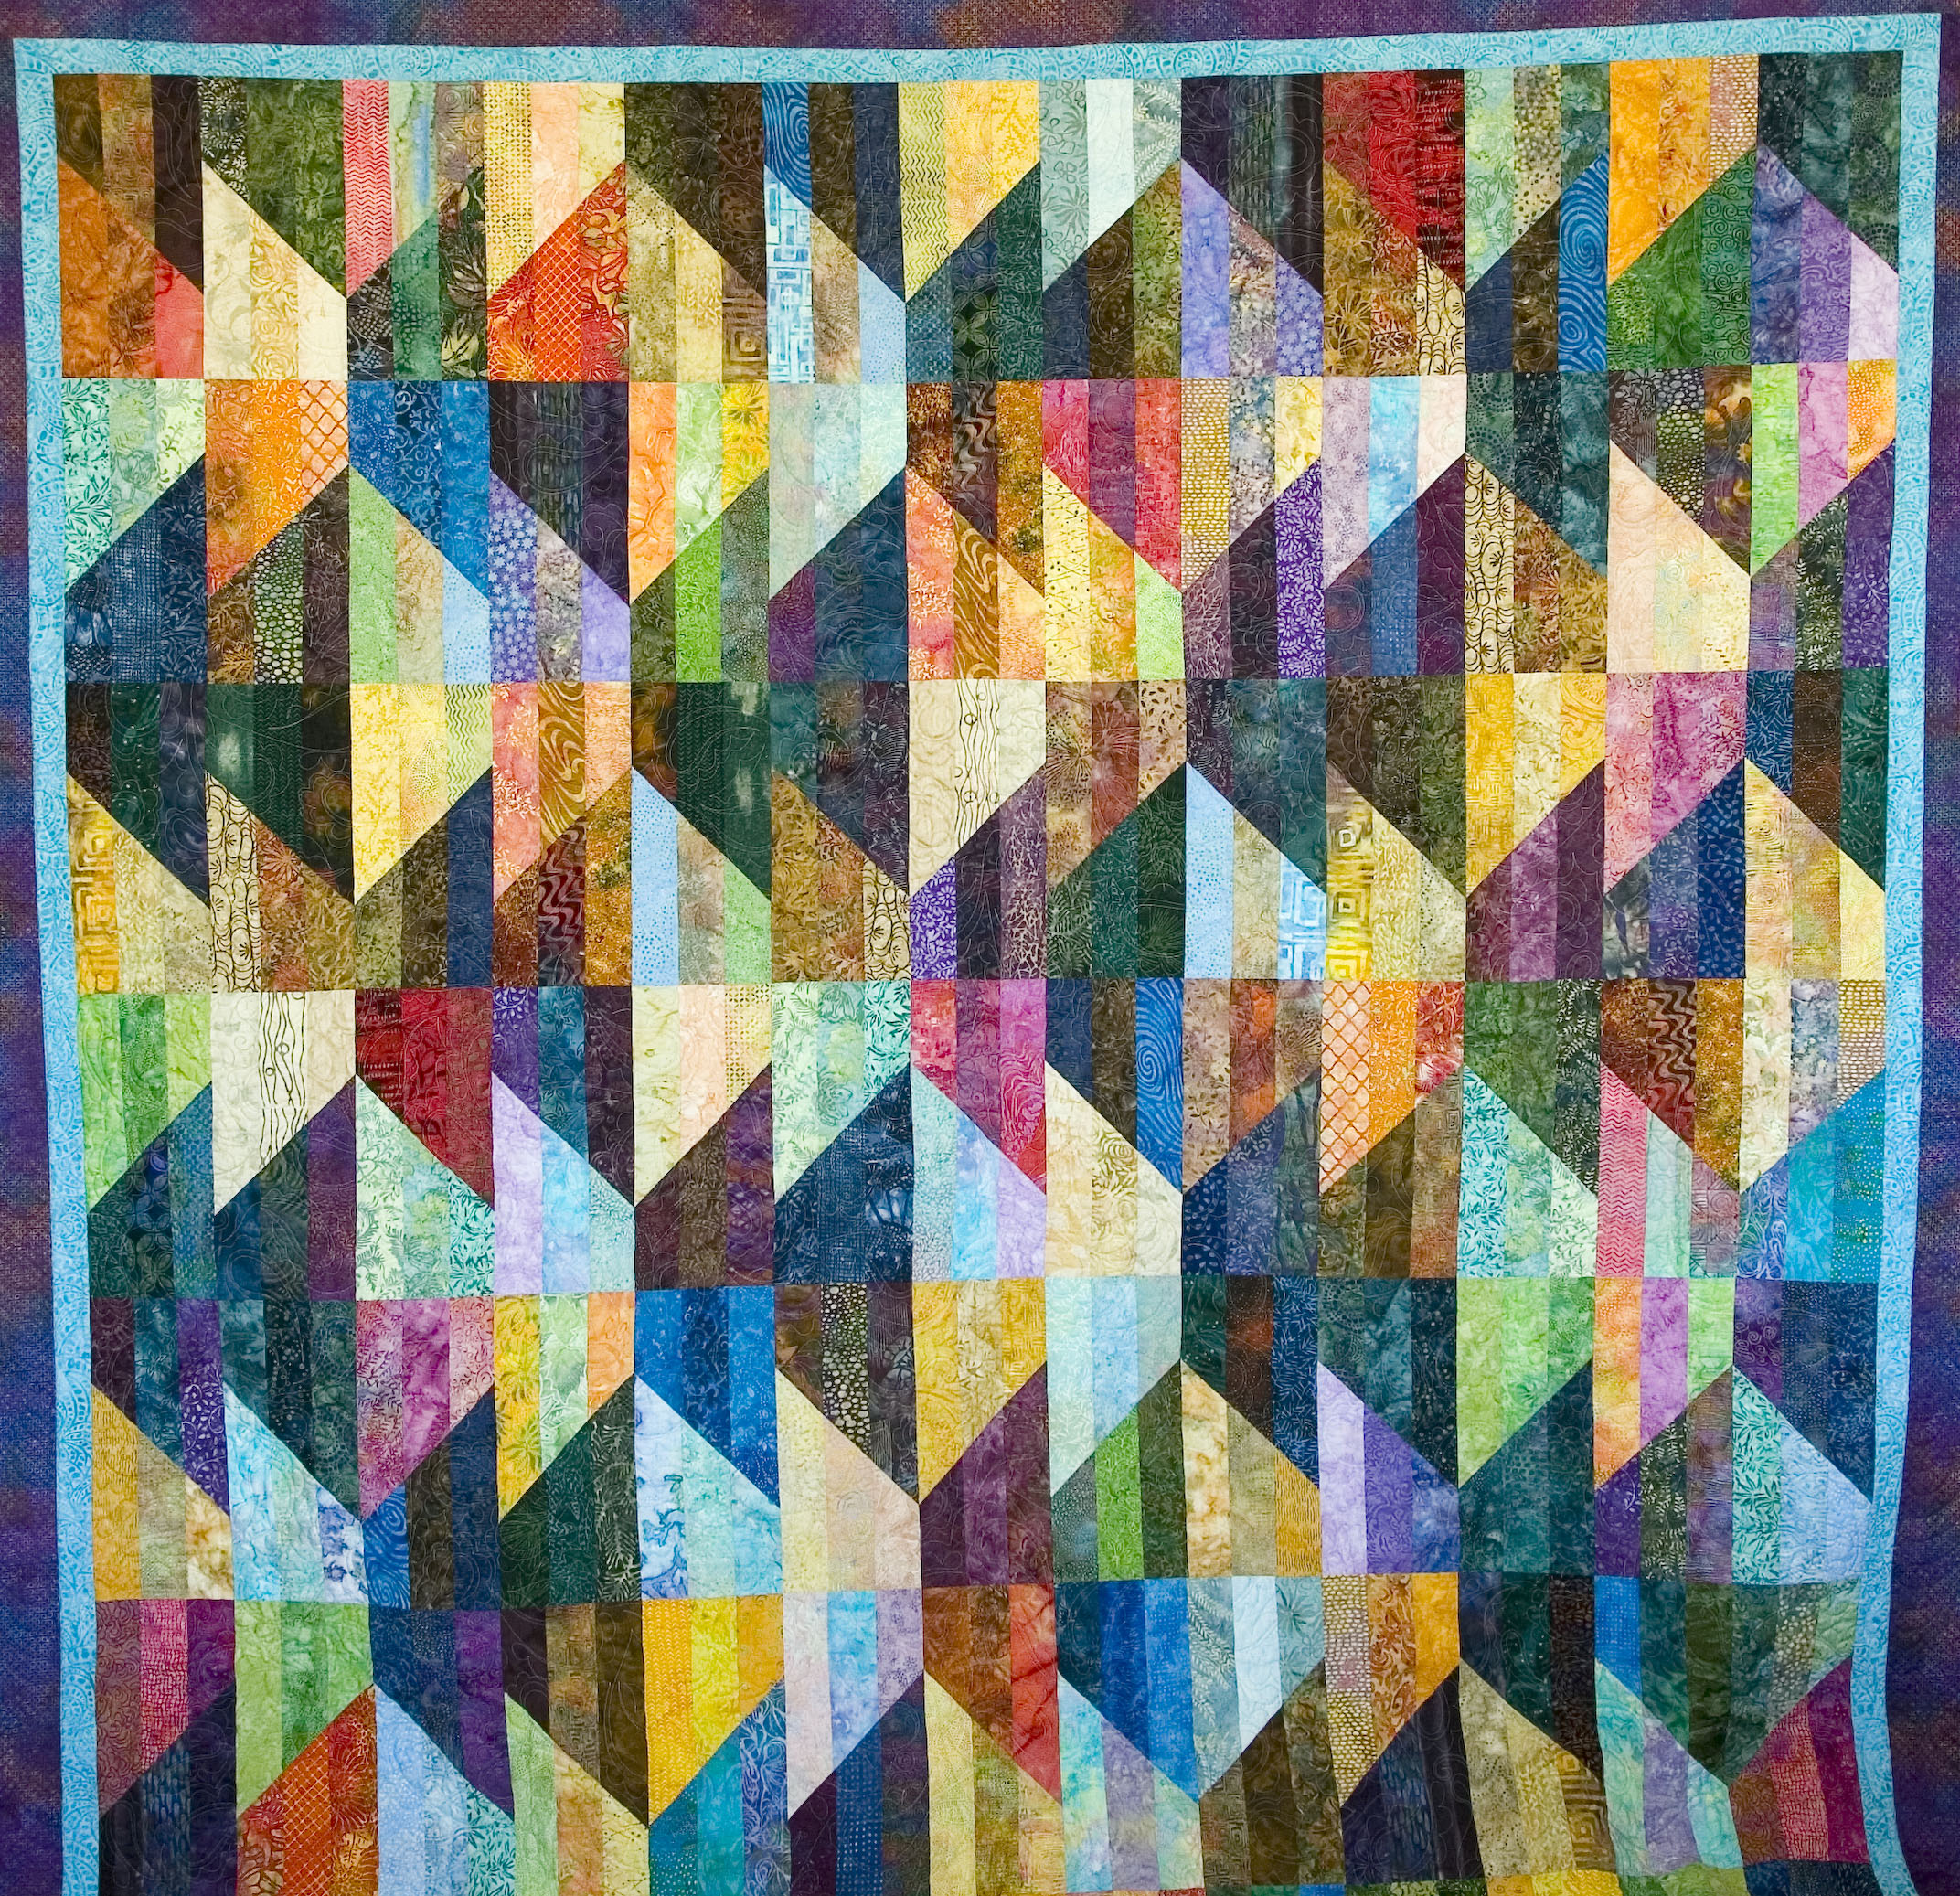 Peggy presents for Patchin' People: Oregon quilter featured for Fall Festival